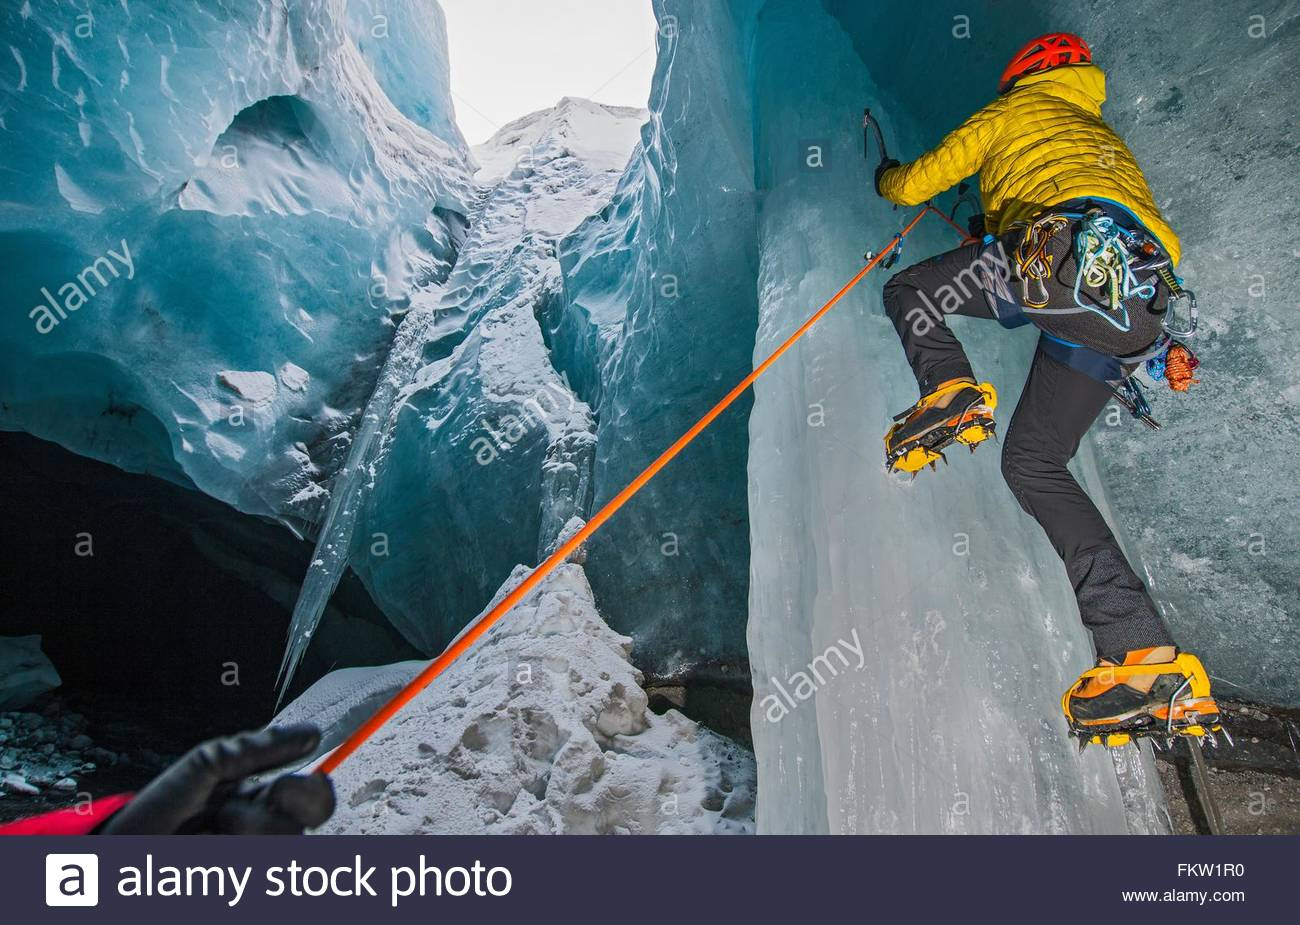 Ice climbers climbing up ice cave below the Gigjokull glacier, Thorsmork, Iceland - Stock Image